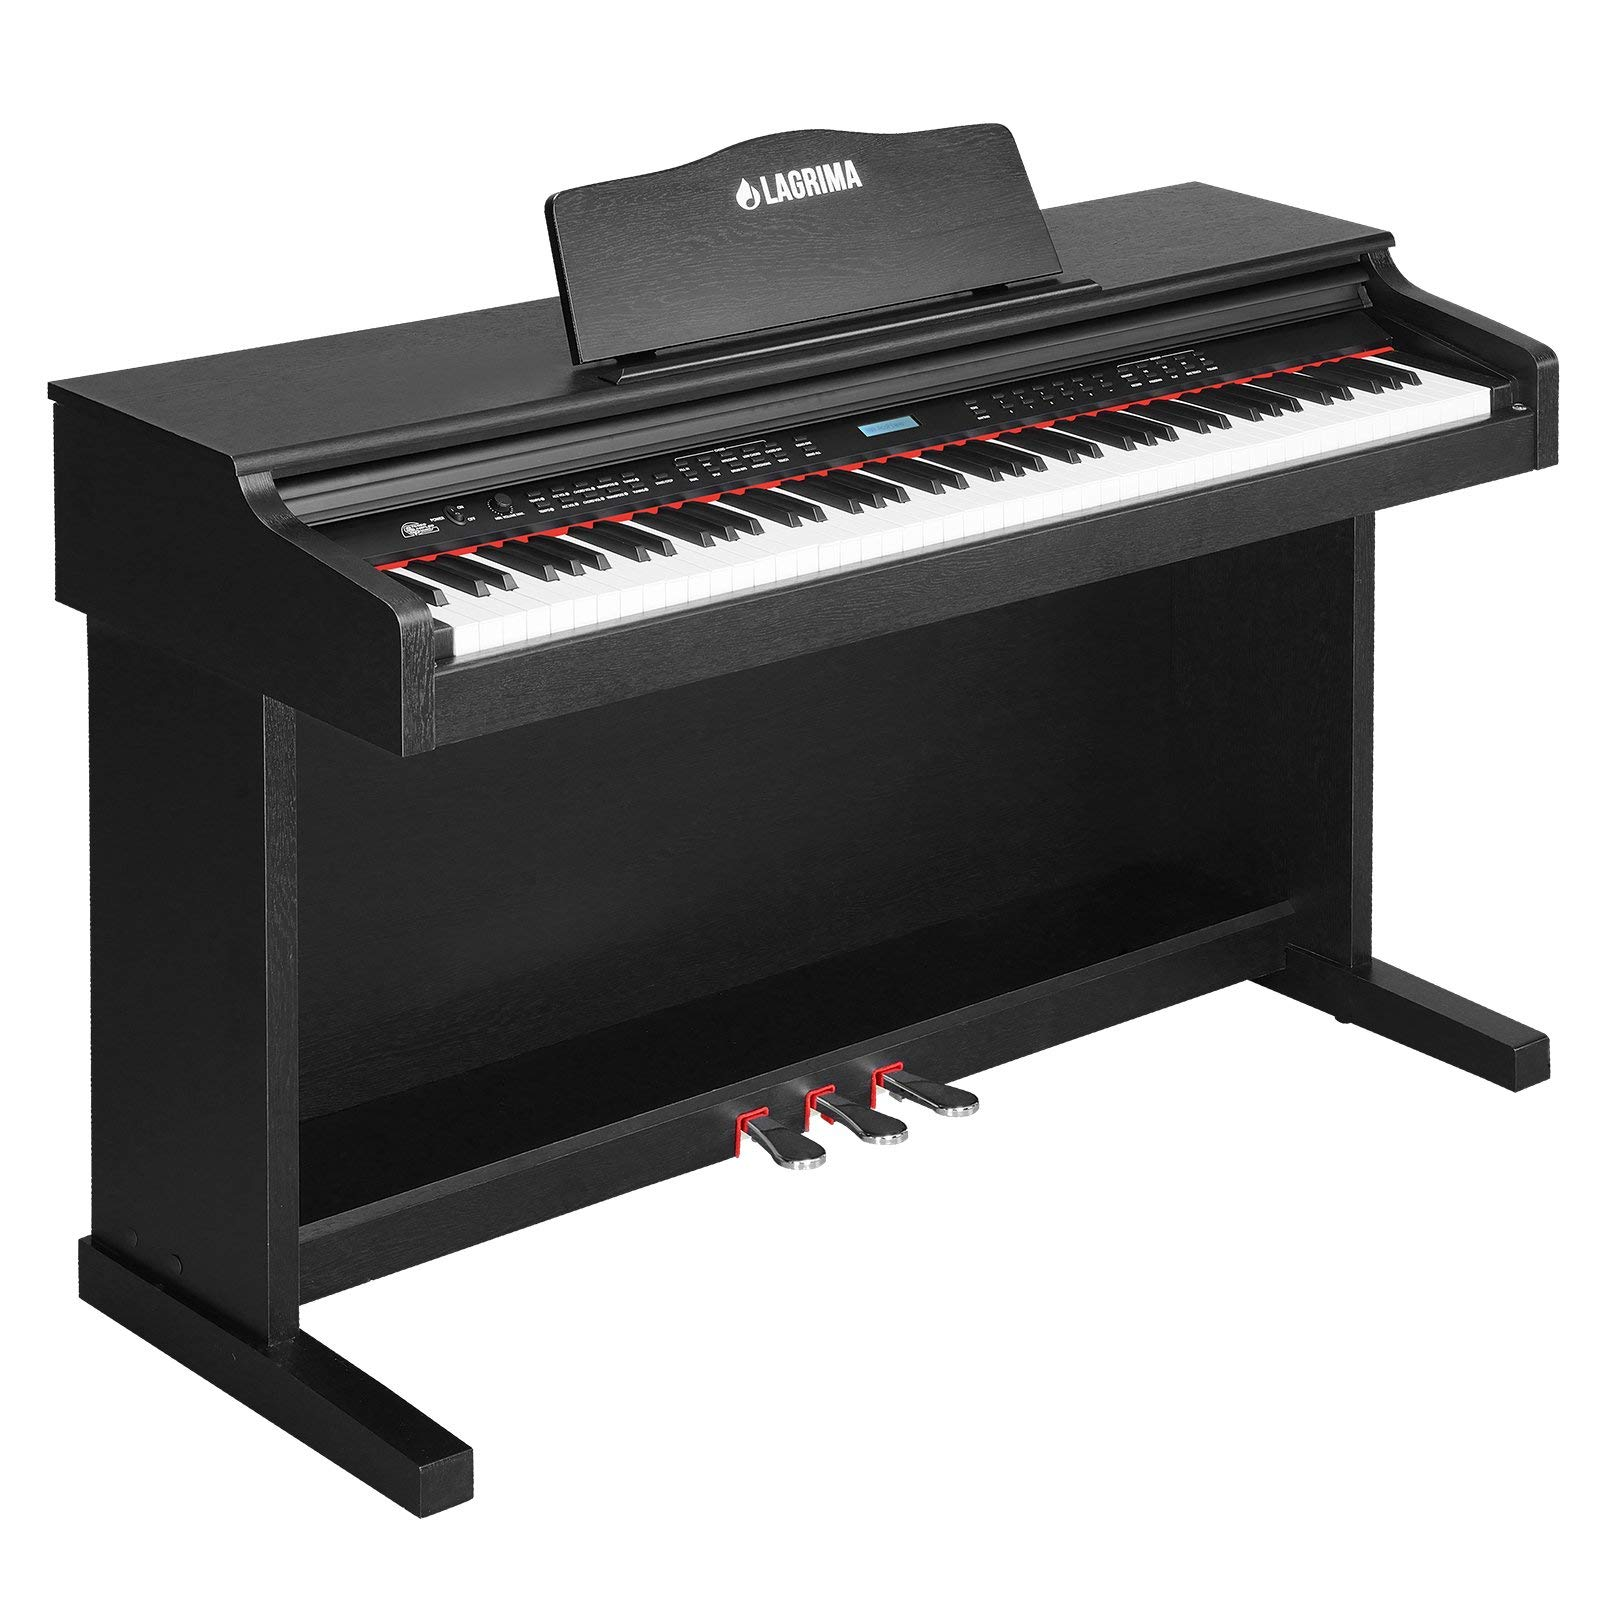 LAGRIMA Digital Piano, 88 Keys Electric Keyboard Piano for Beginner(Kids/Adults), w/Power Adapter+3 Metal Pedals+Instruction Book, 2 Headphone Jack/Midi/USB Output for Phone, Table and Computer